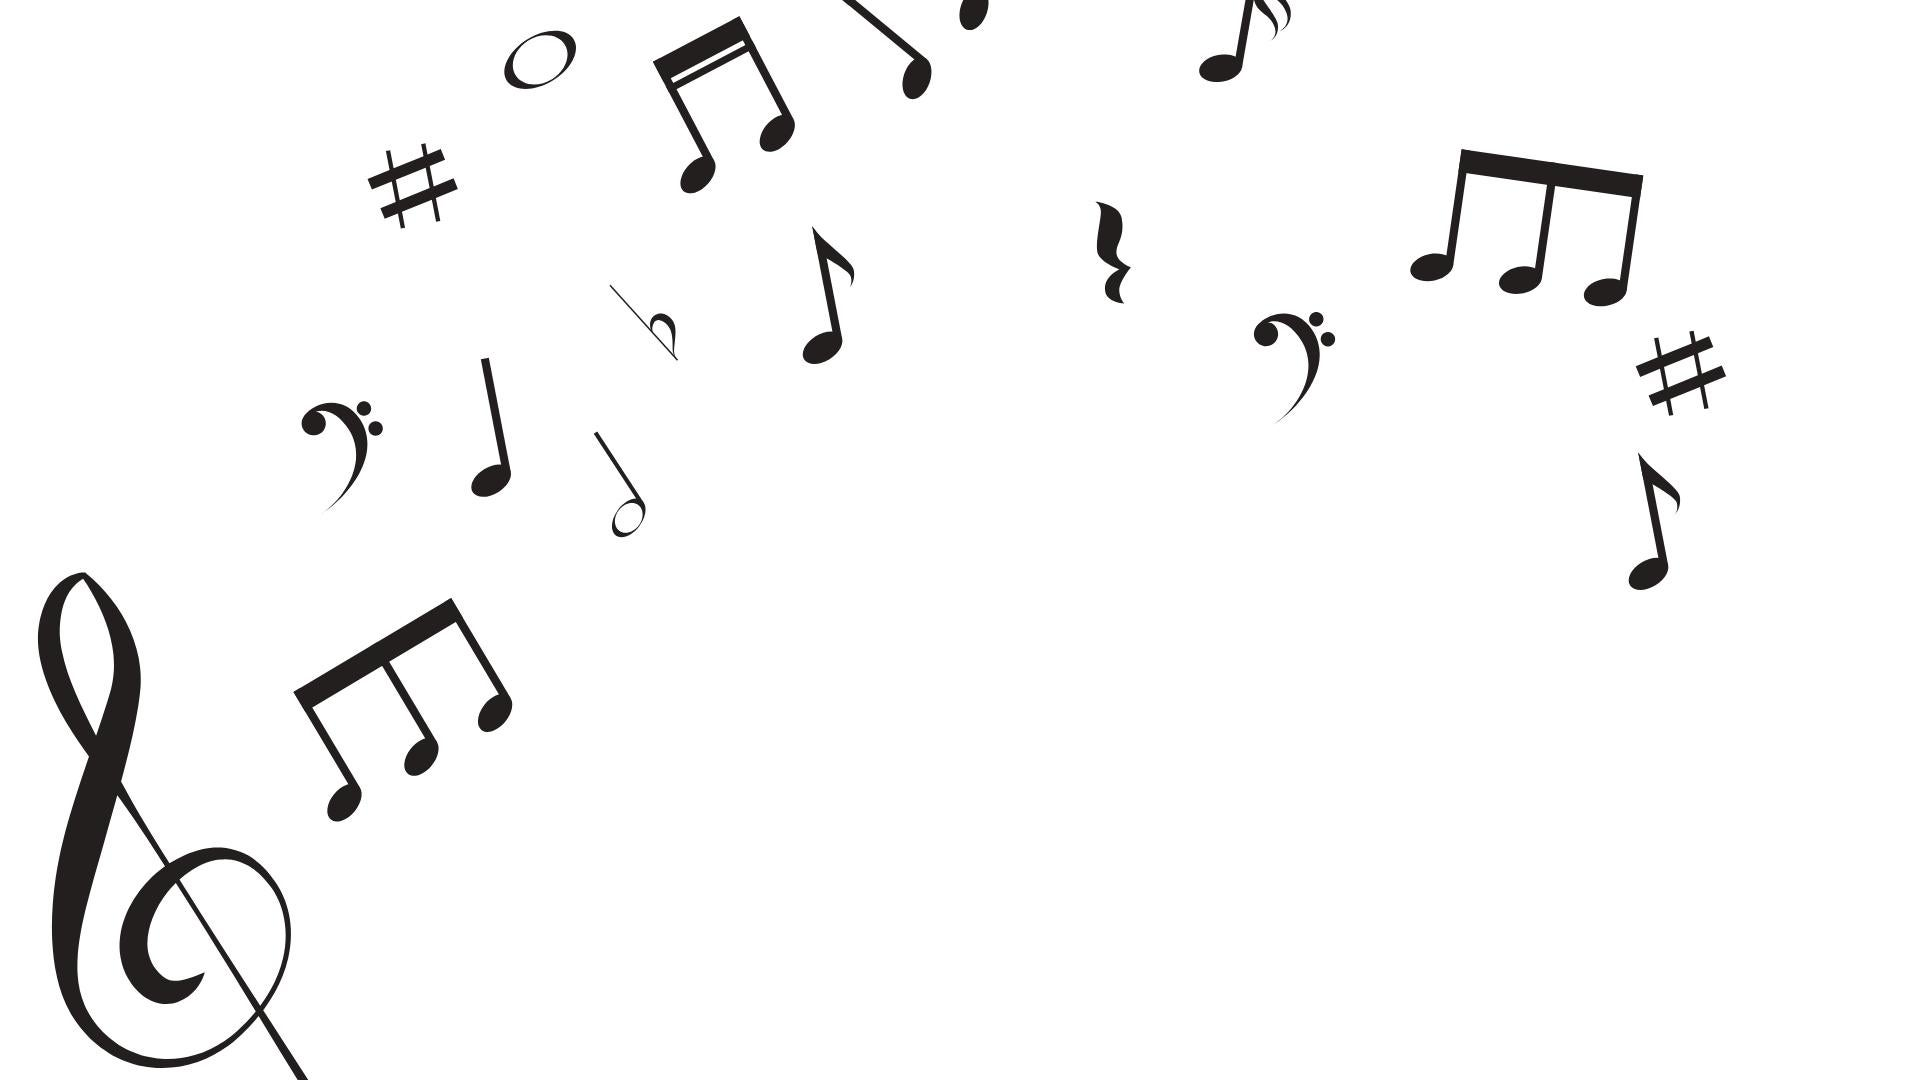 graphic of Musical notes and symbols to be used as placeholder until musician photo is available